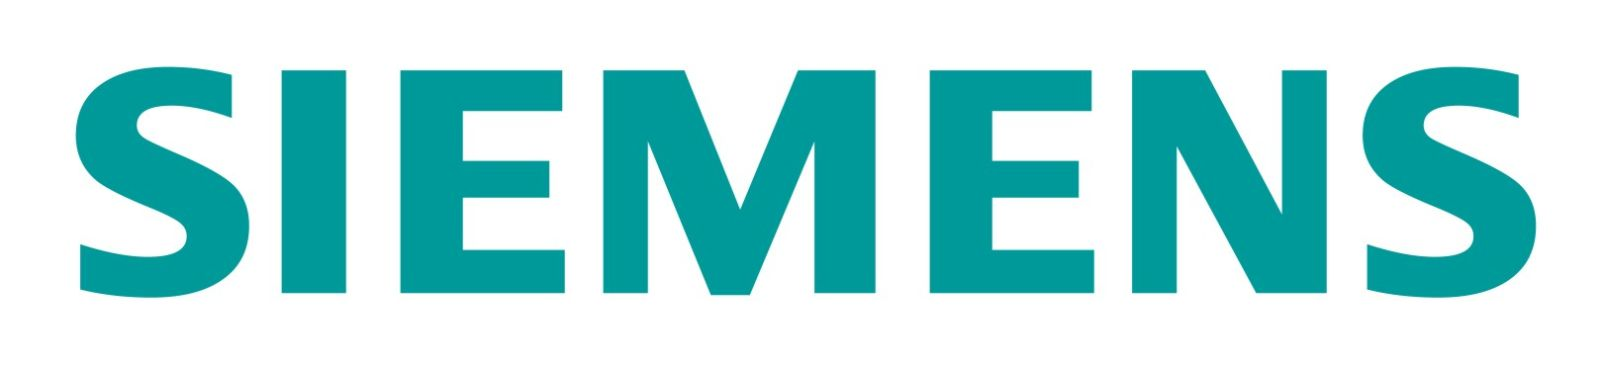 http://ia-community.com/upload/images/siemens_logo.jpg